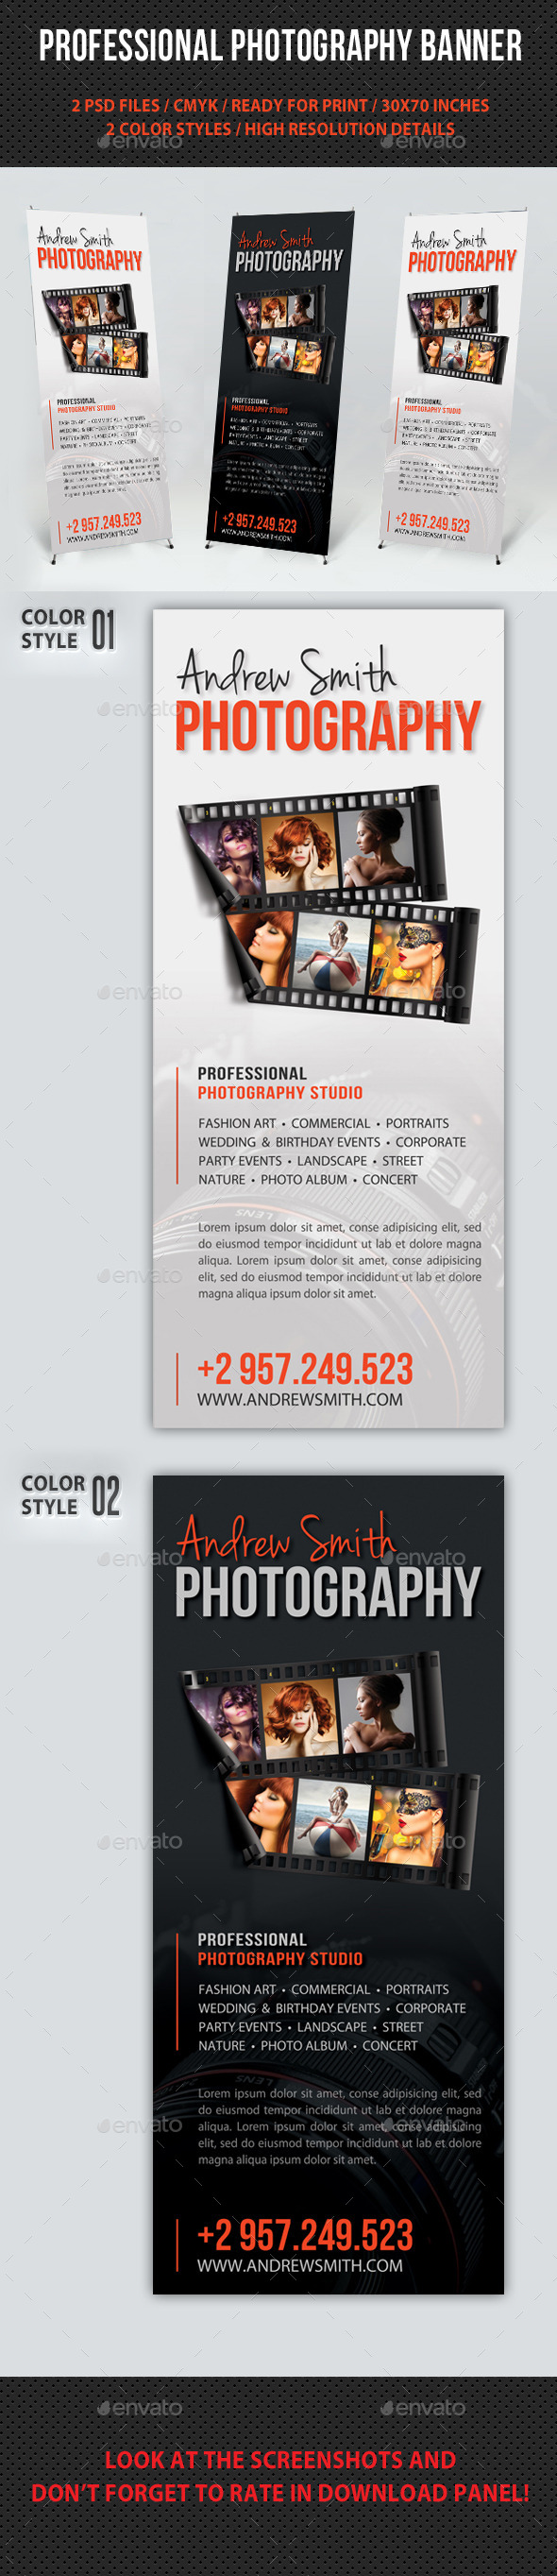 Photograph Product Multipurpose Banner 15 - Signage Print Templates